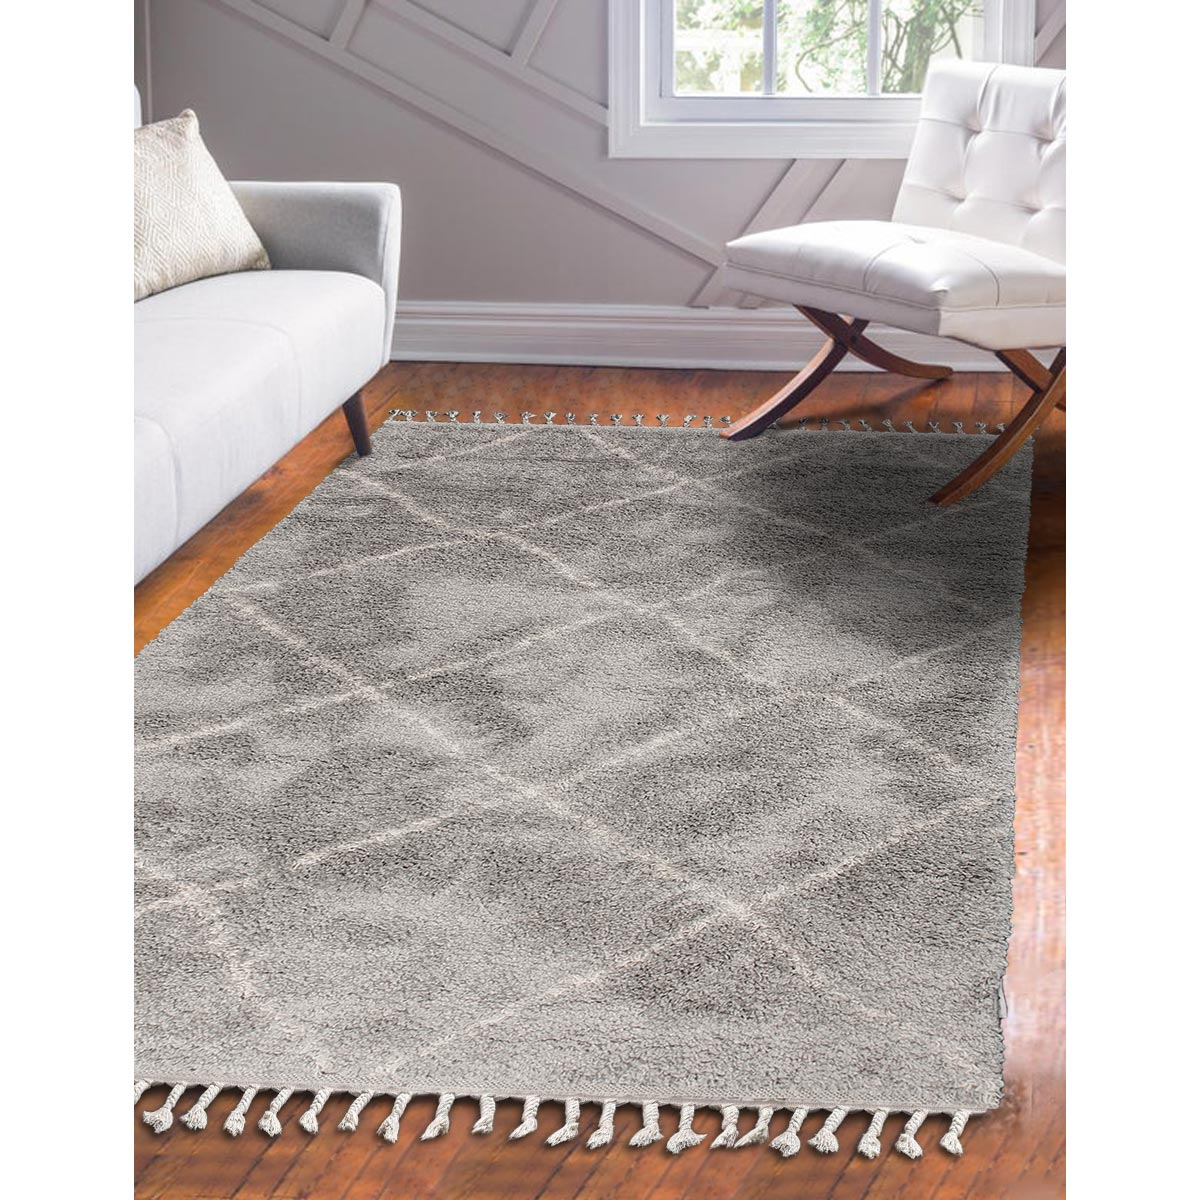 Shaggy Marrakech Rug 07 Grey/Cream 2